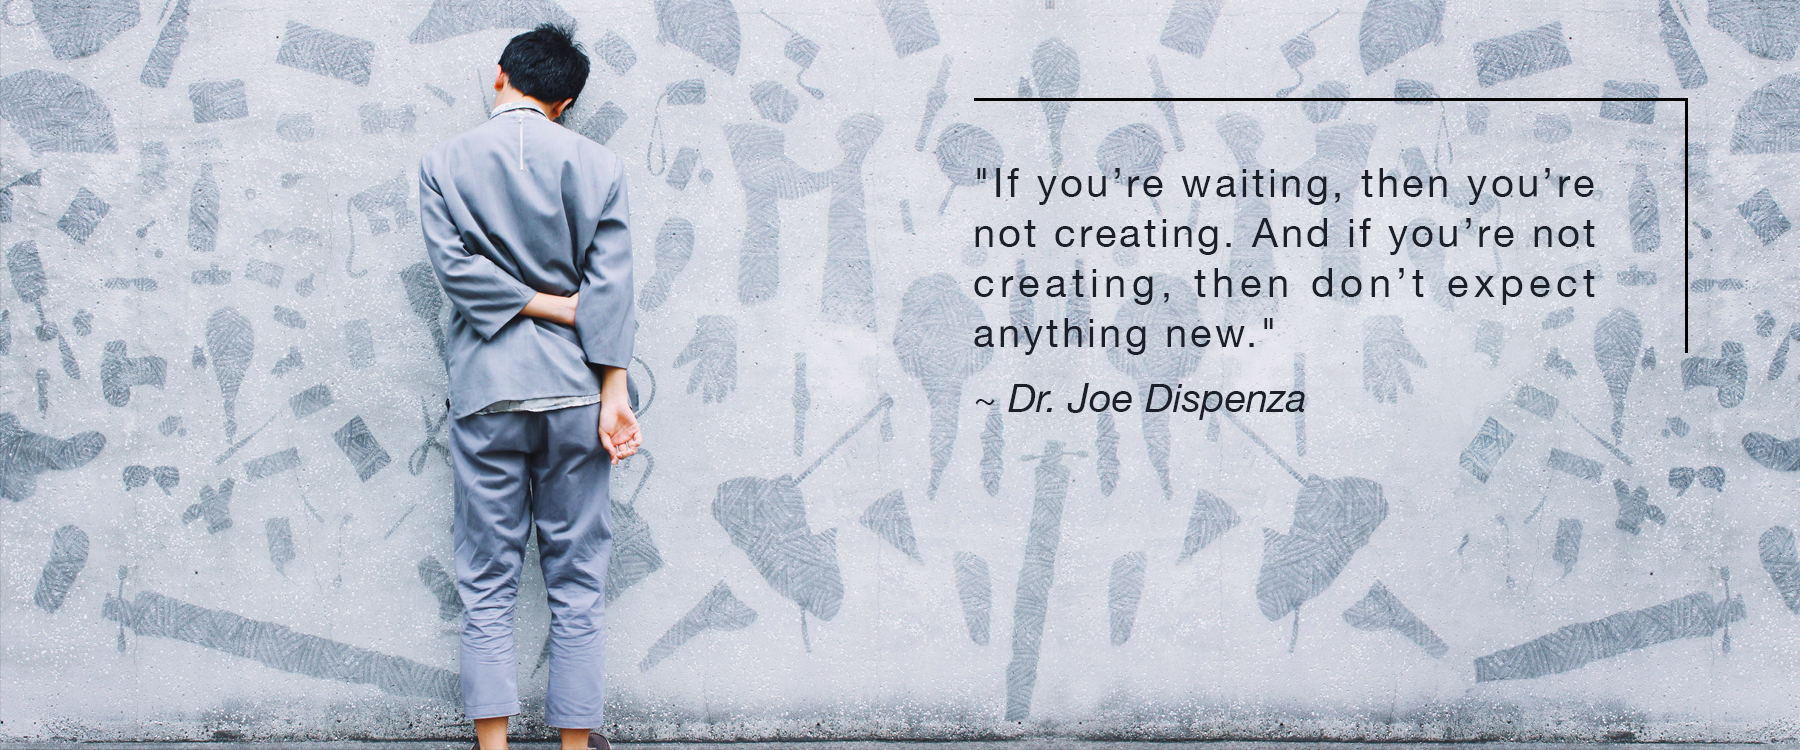 If You're Waiting, You're Not Creating